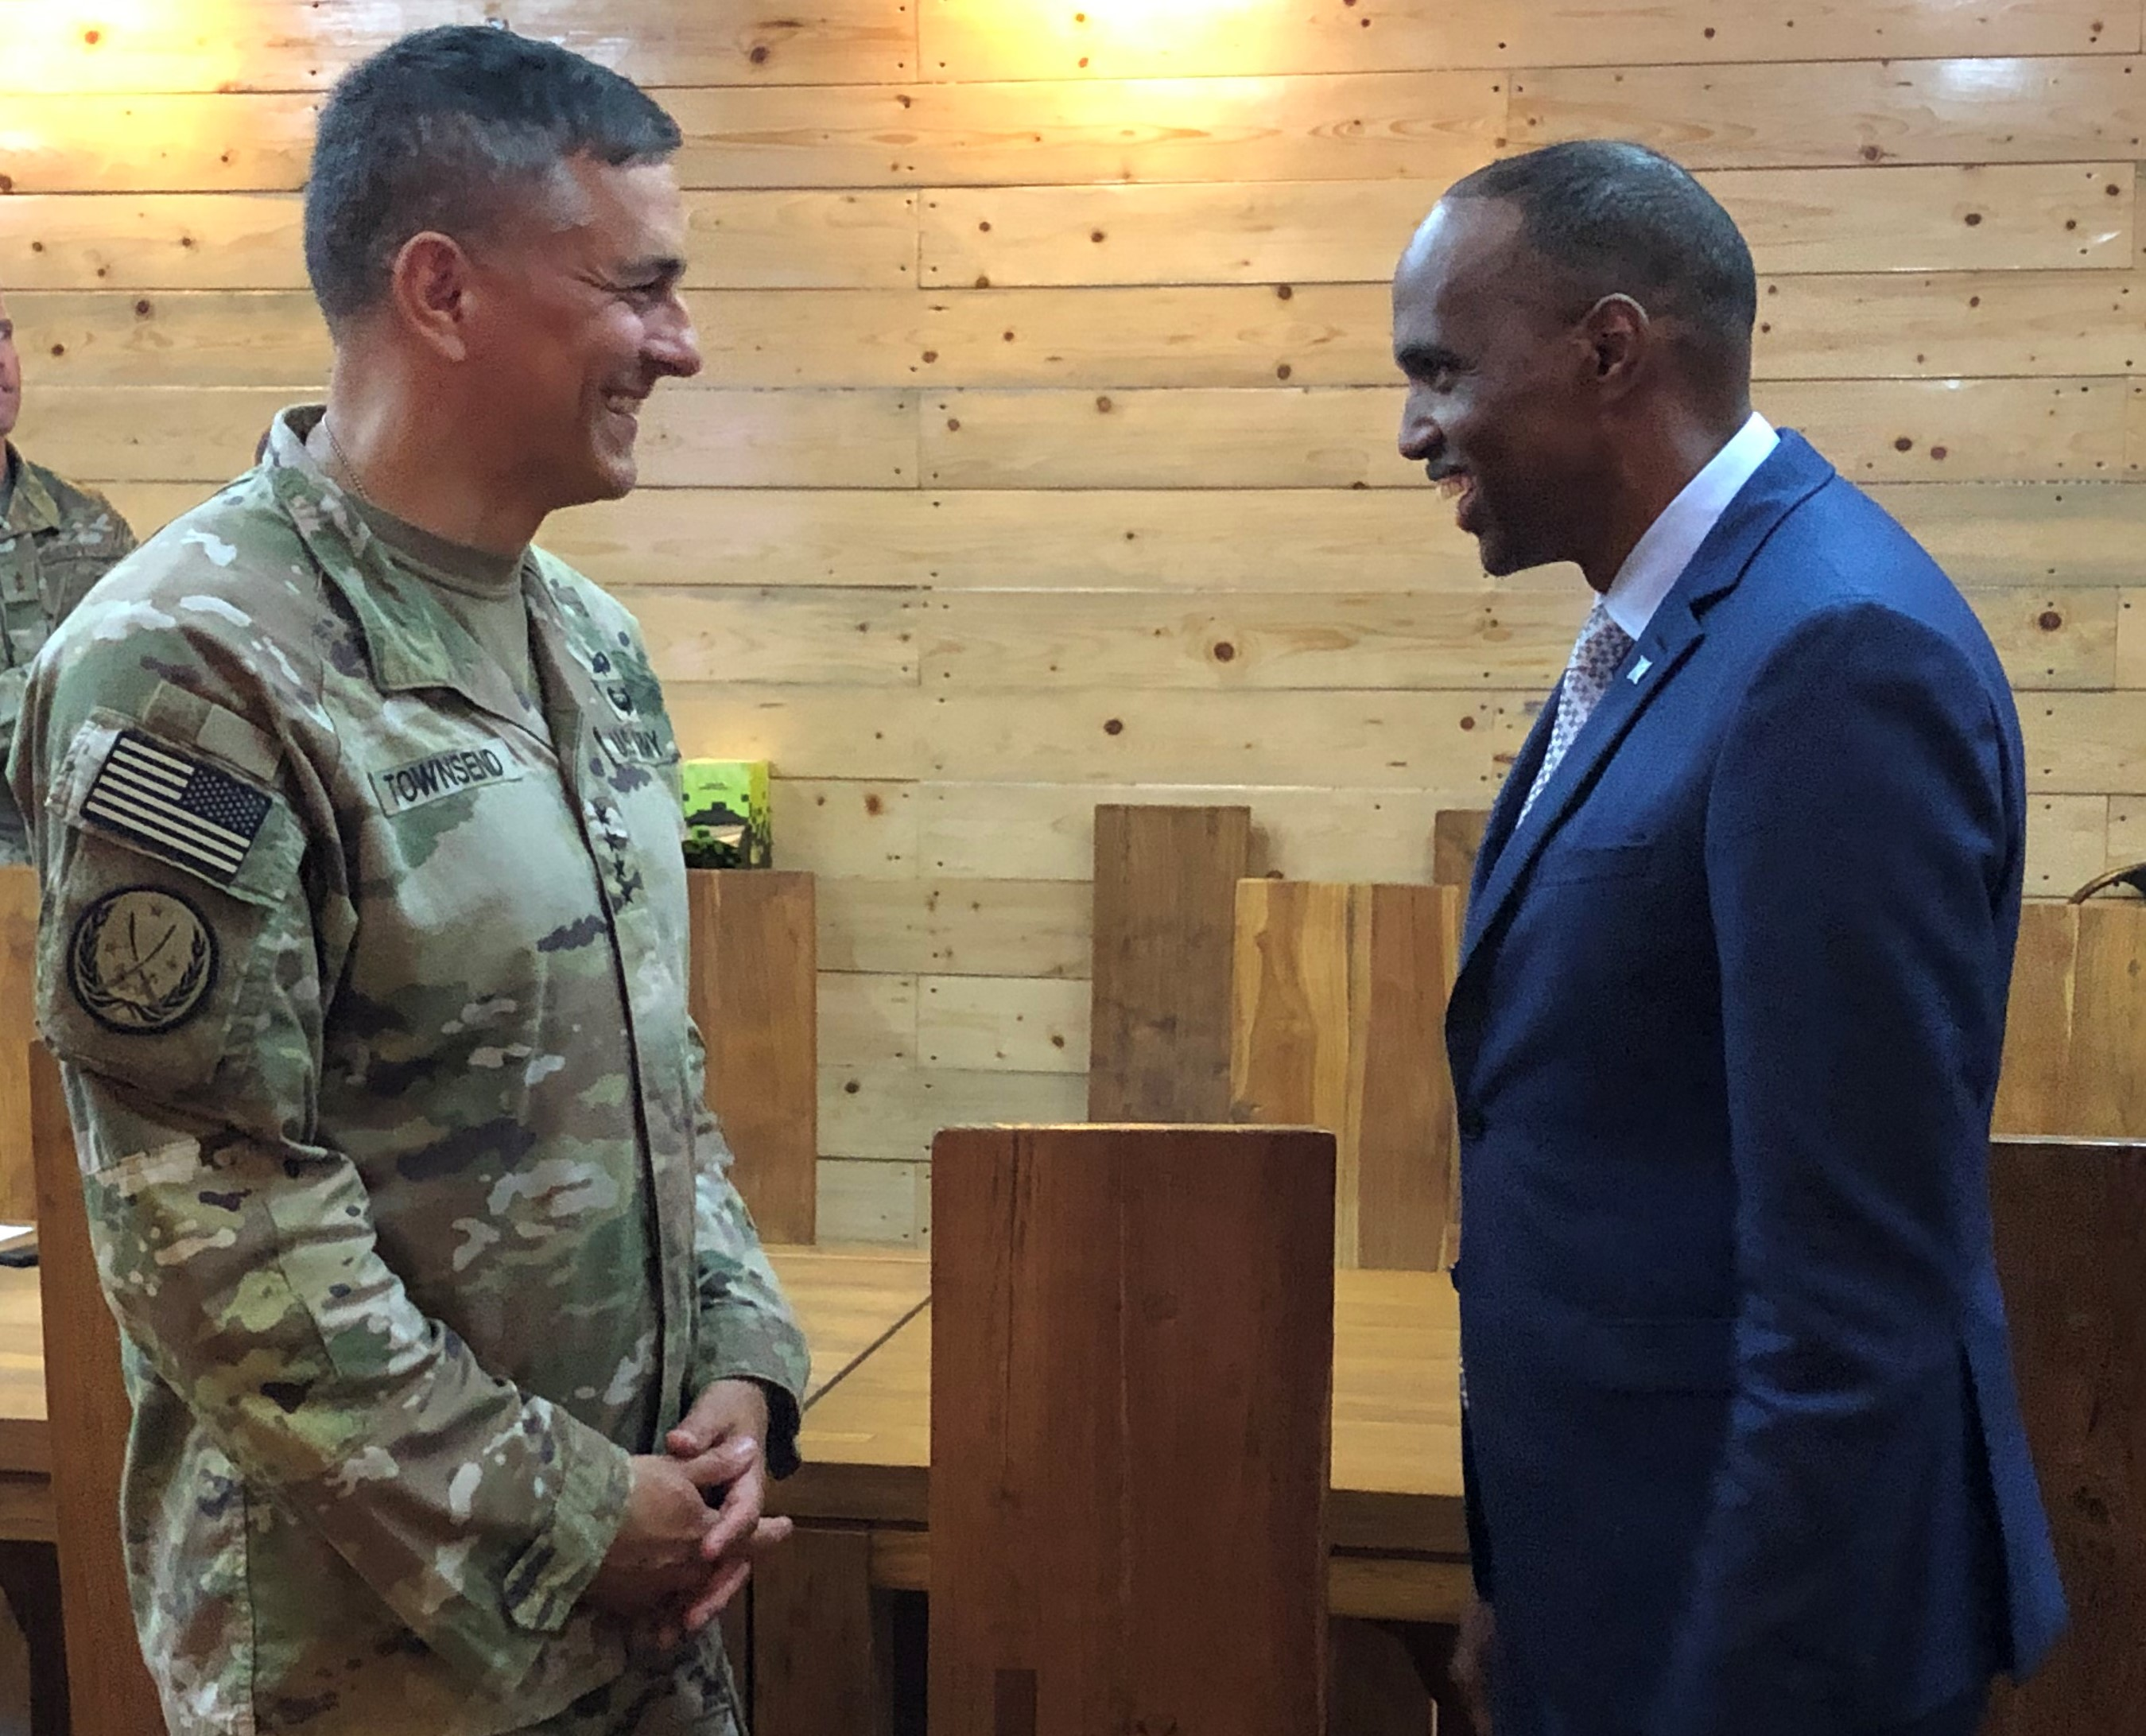 U.S. Army Gen. Stephen Townsend meets with Somali Prime Minister Hassan Ali Khayre Aug. 7, 2019. Townsend visited Somalia as part of his first trip to the African continent since taking command on July 26.